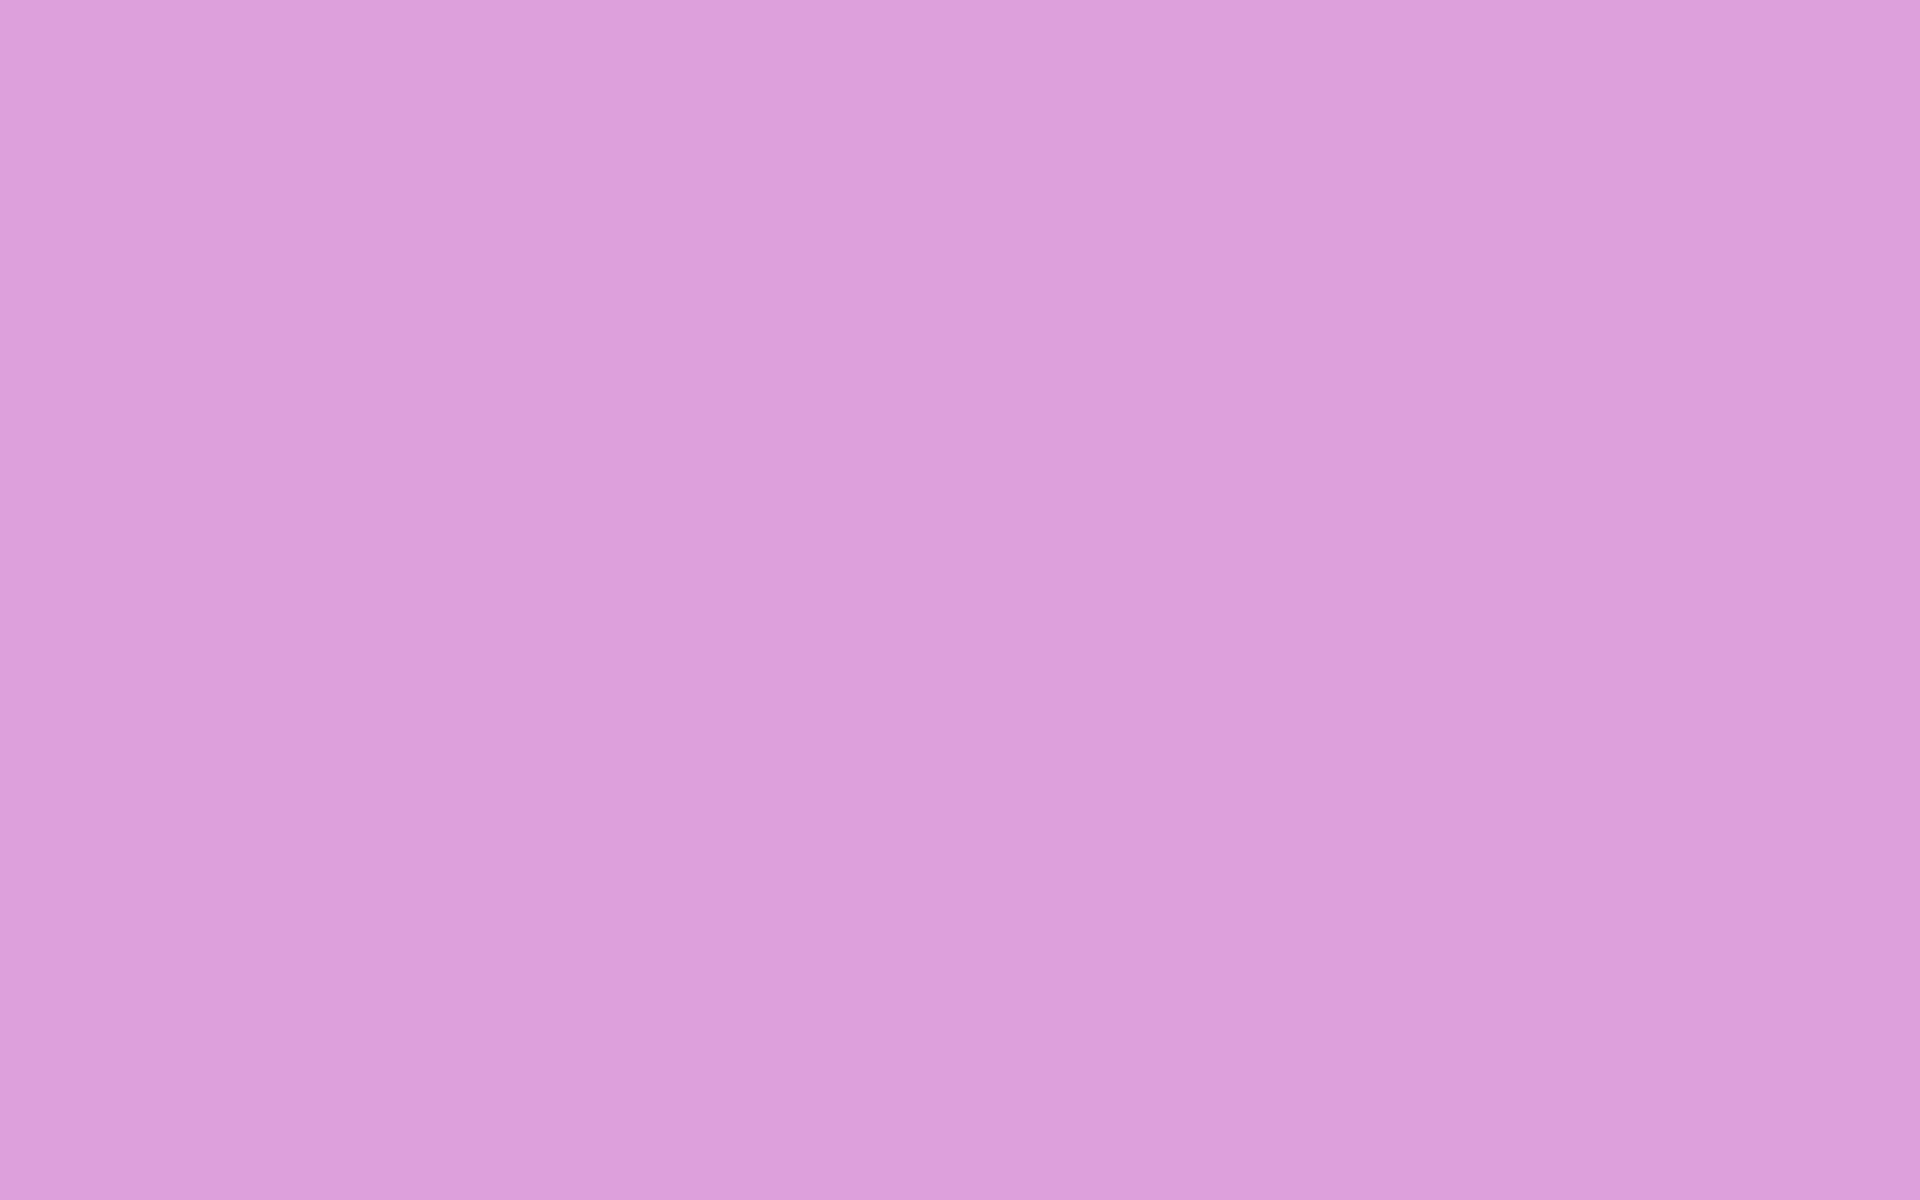 1920x1200 Pale Plum Solid Color Background 1920x1200